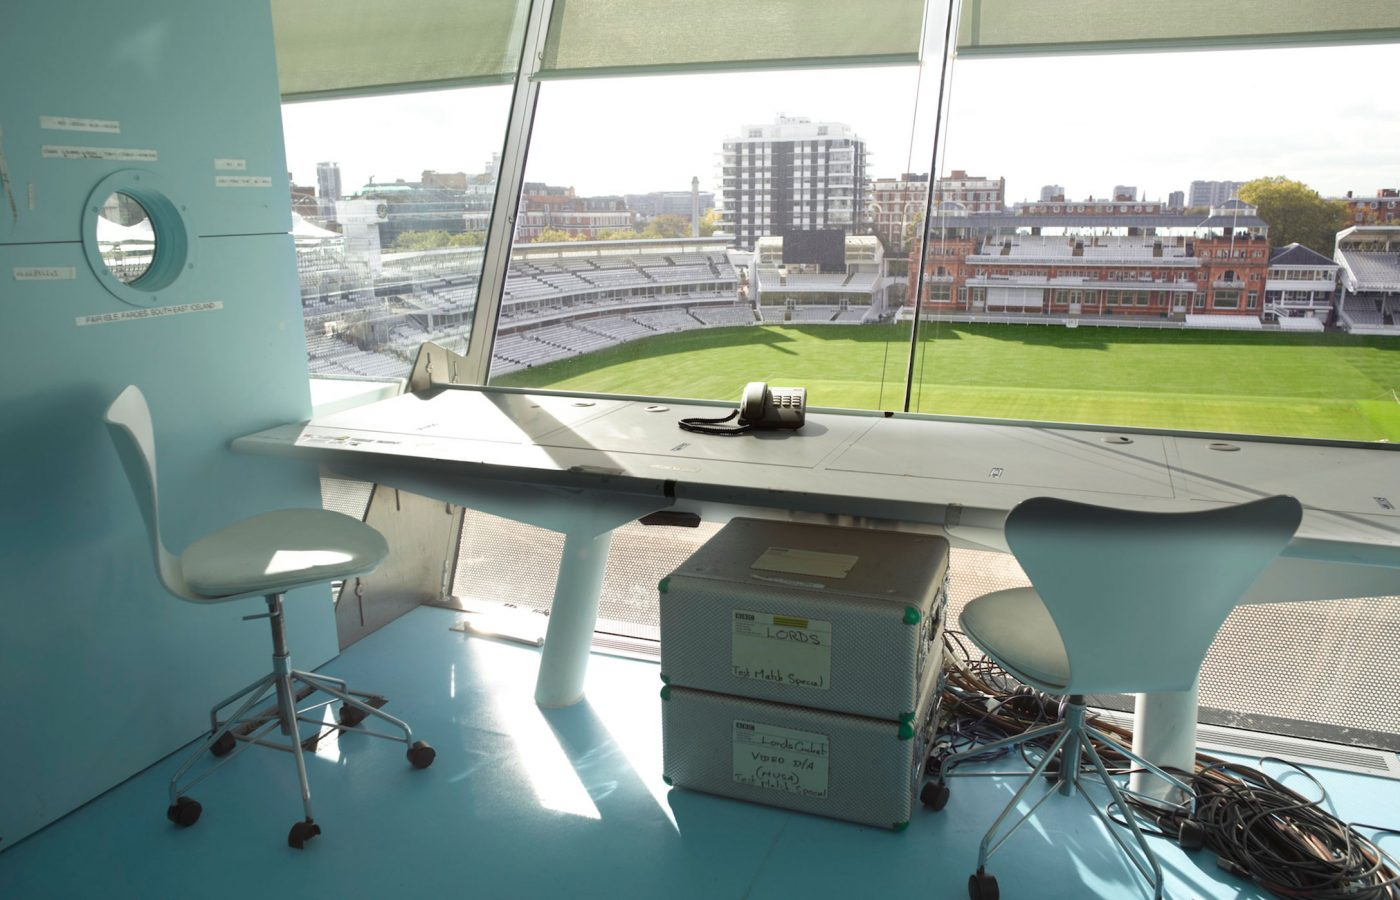 Lords Cricket Ground BBC Test Match Special Box